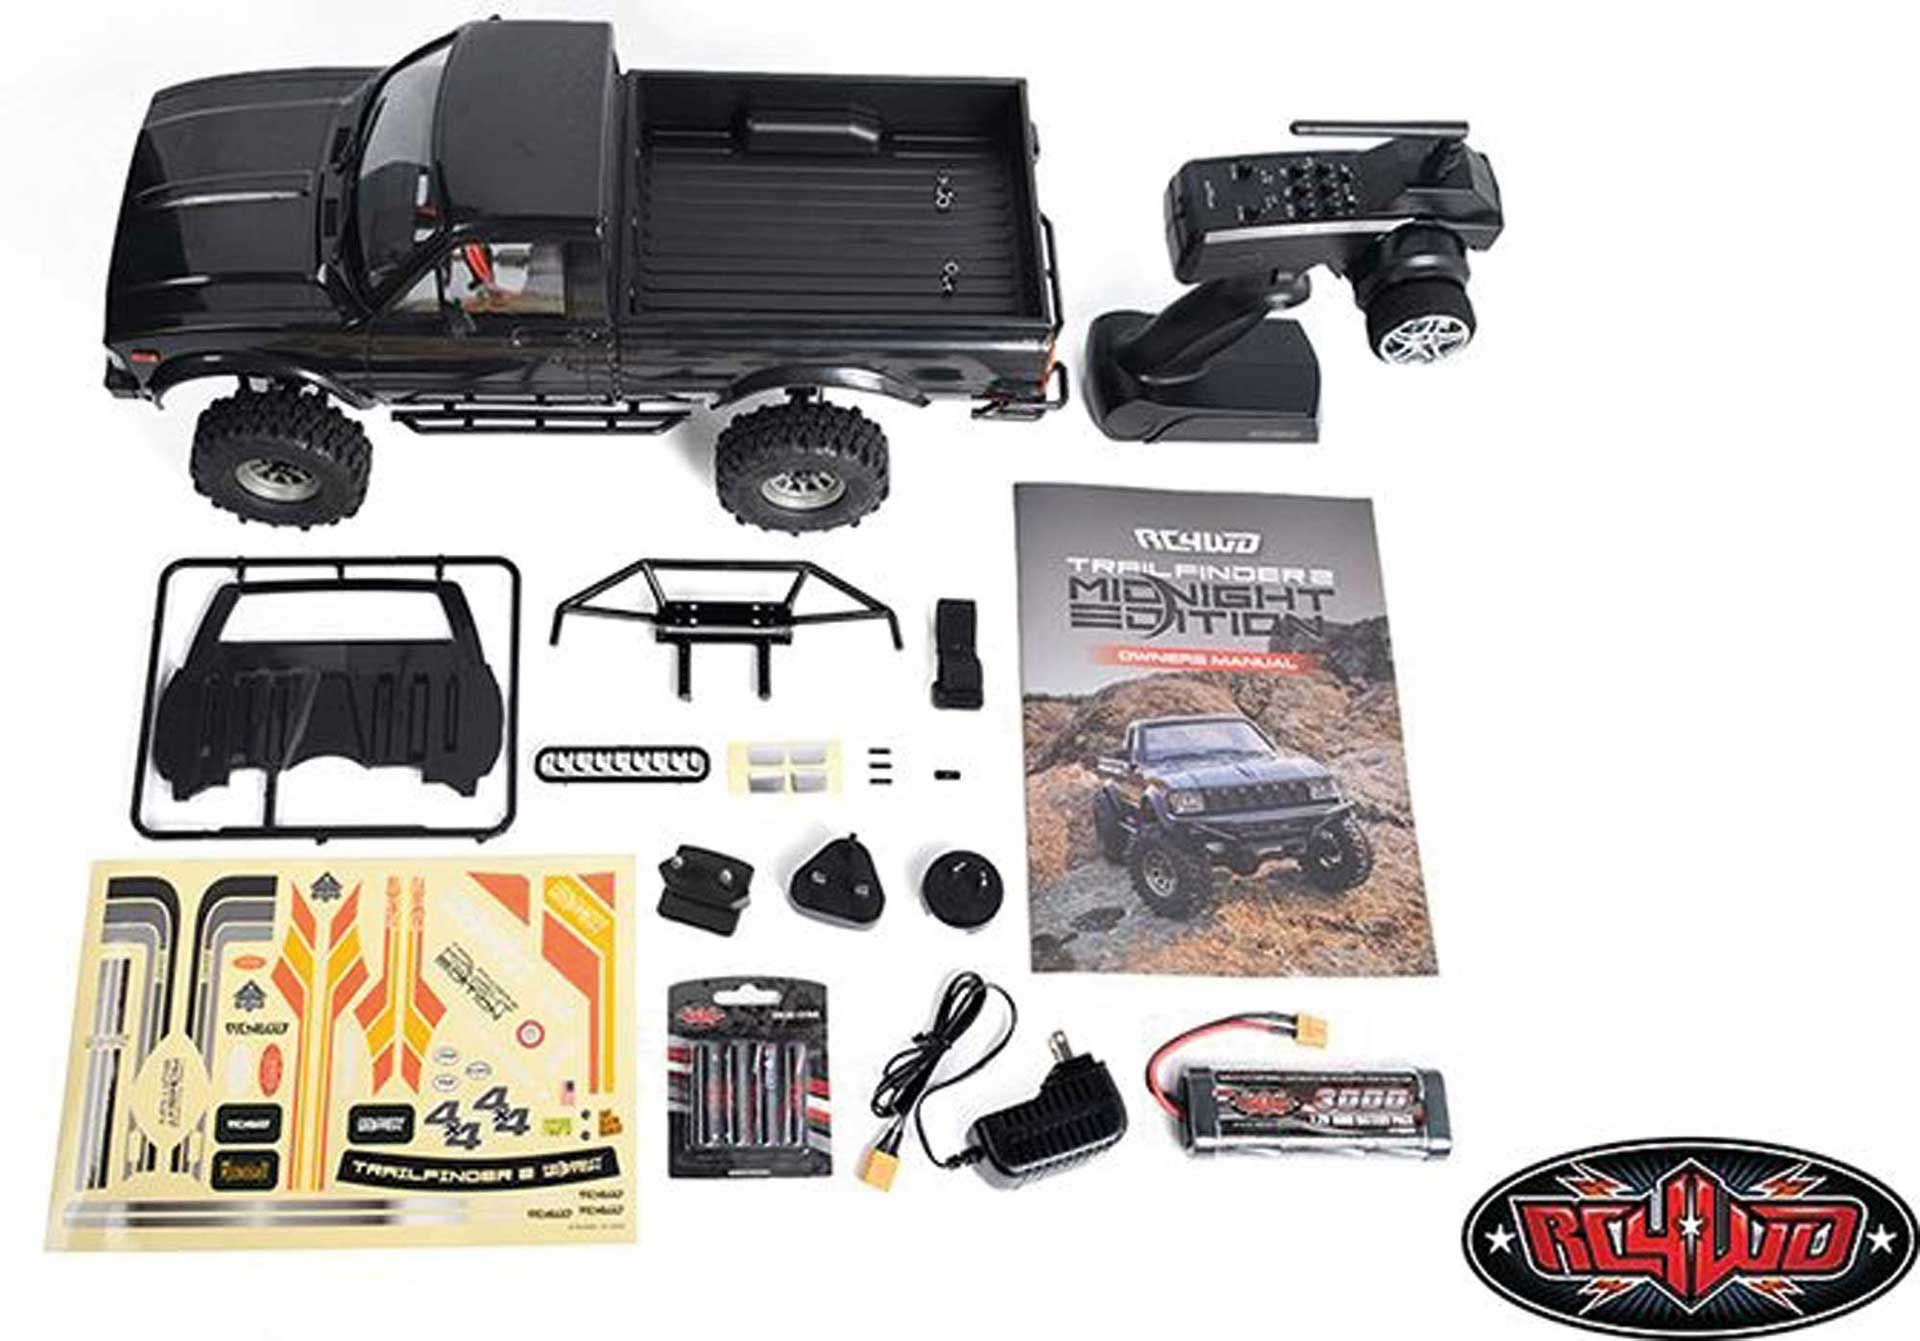 RC4WD Trail Finder 2 Midnight Edition RTR inkl. Mojave II Karosserie